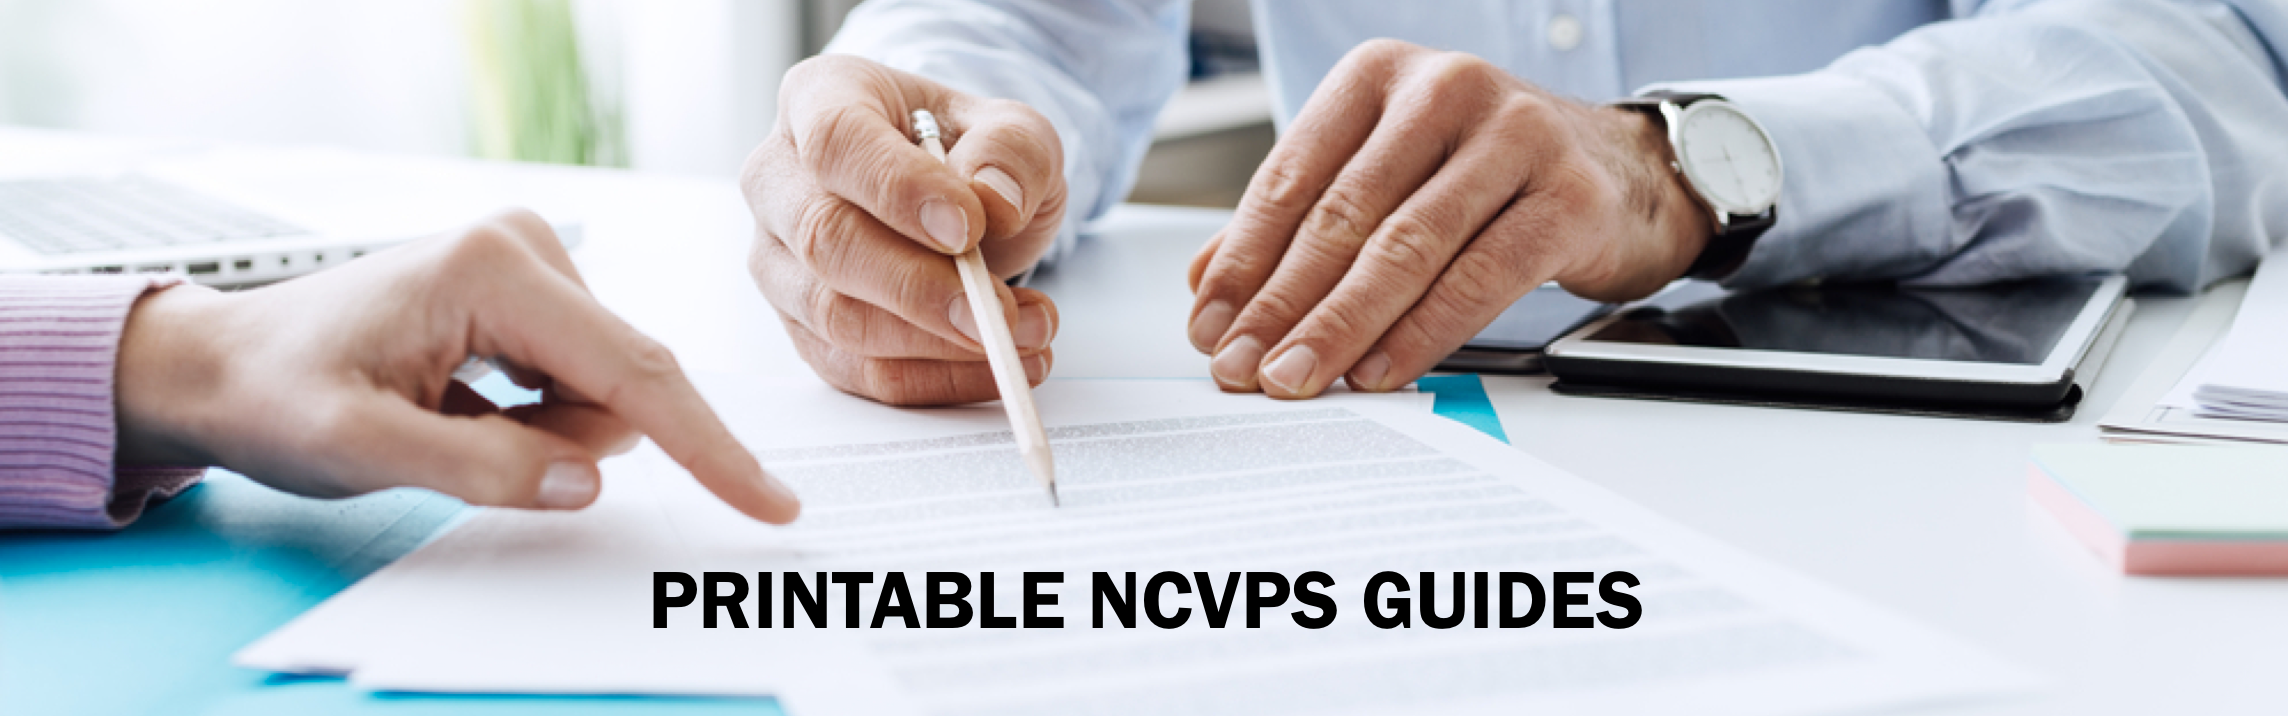 NCVPS Printable Documents Image